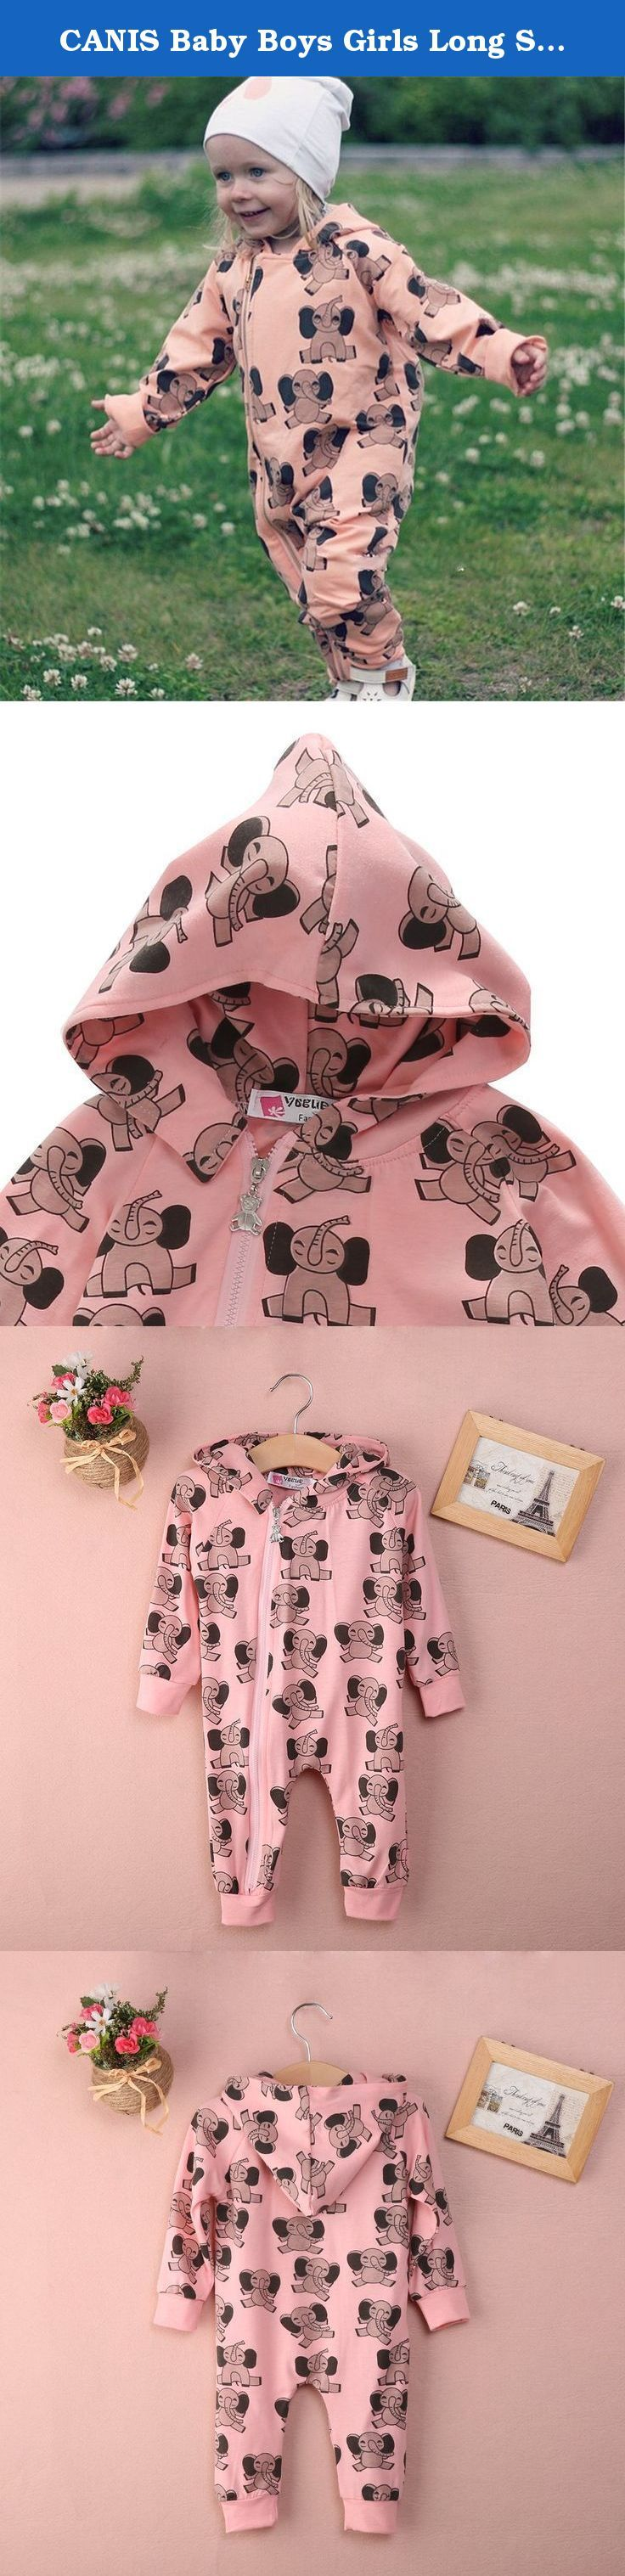 """CANIS Baby Boys Girls Long Sleeve Elephant Print Zipper Hoodie Romper. It is very comfortable to wear. Best jumpsuit for baby winter daily wearing. High quality and Durable. Size information: 70:Total Length 50cm/19.6"""",Chest 27*2cm/21.2"""",Sleeve 30cm/11.8"""",For age 0-6M 80:Total Length 53cm/20.8"""",Chest 28*2cm/22.0"""",Sleeve 32.5cm/12.7"""",For age 6-12M 90:Total Length 56cm/22.0"""",Chest 29*2cm/22.8"""",Sleeve 35cm/13.7"""",For age 12-18M 100:Total Length 59cm/23.2"""",Chest 30*2cm/23.6"""",Sleeve..."""